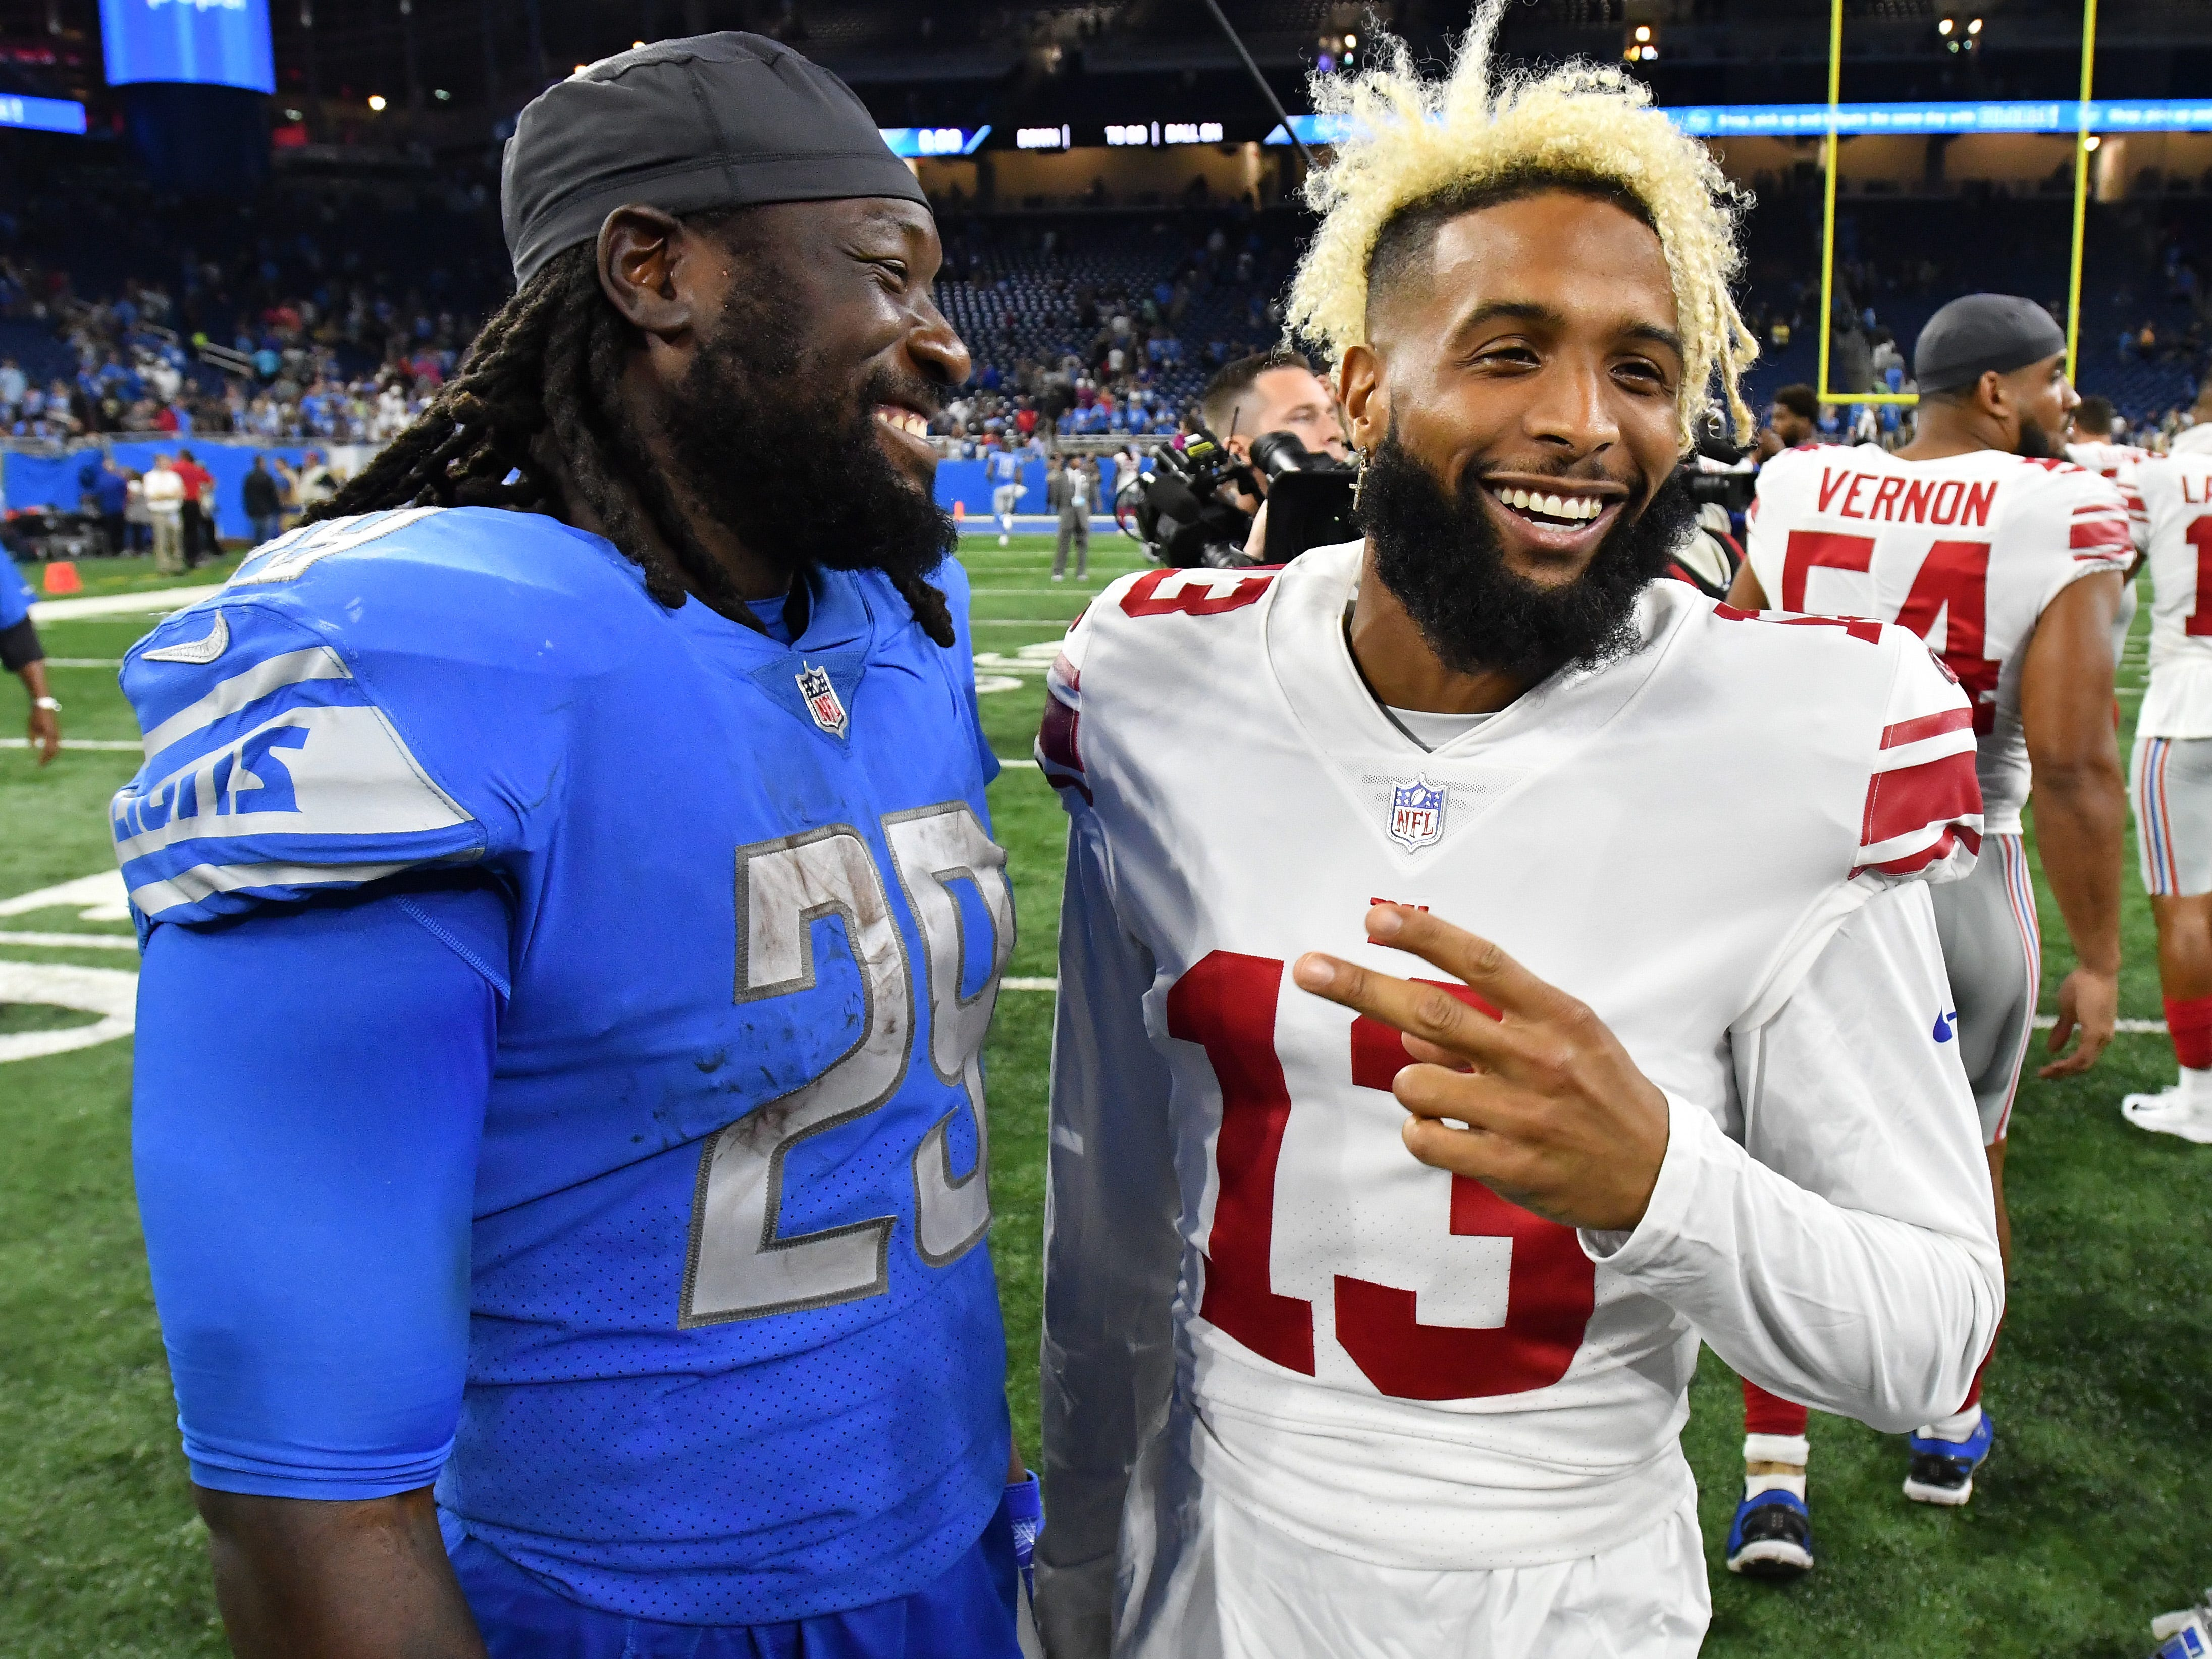 Lions running back LeGarrette Blount and Giants wide receiver Odell Beckham Jr. meet on the field after the 30-17 Detroit loss.